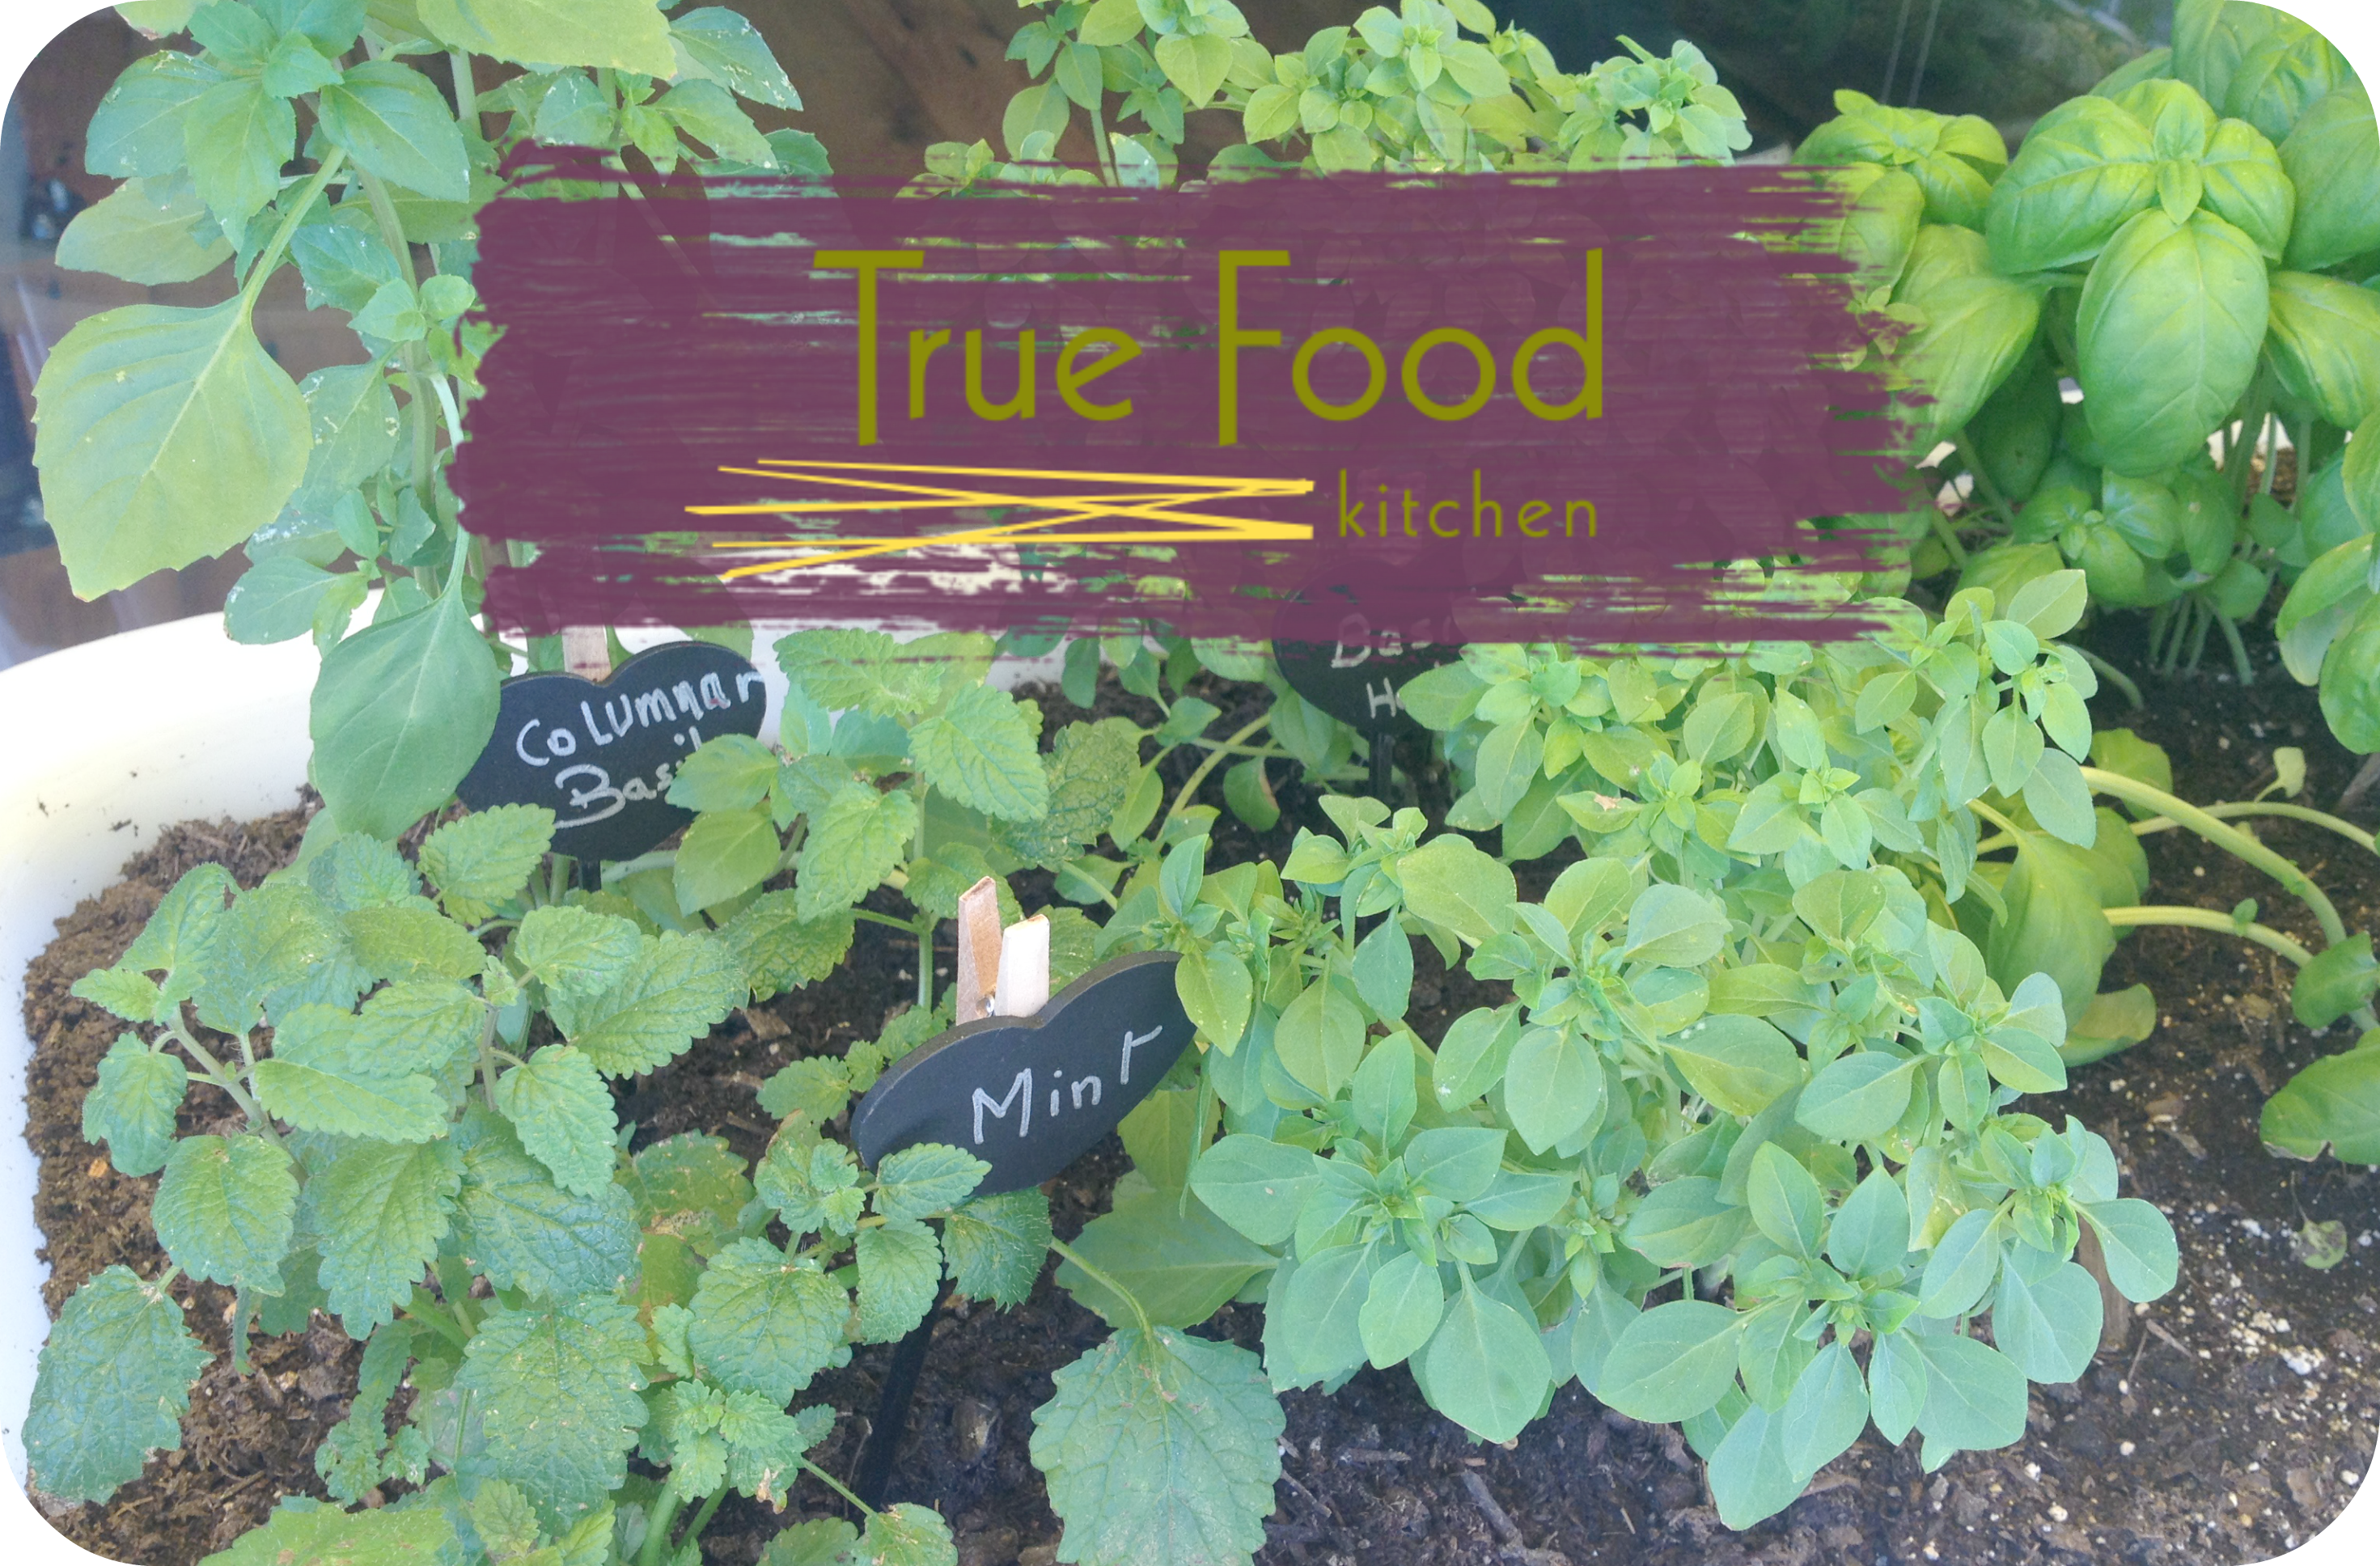 Garden Kitchen Houston Lean Green Island Girl True Food Kitchen Healthy Sustainable